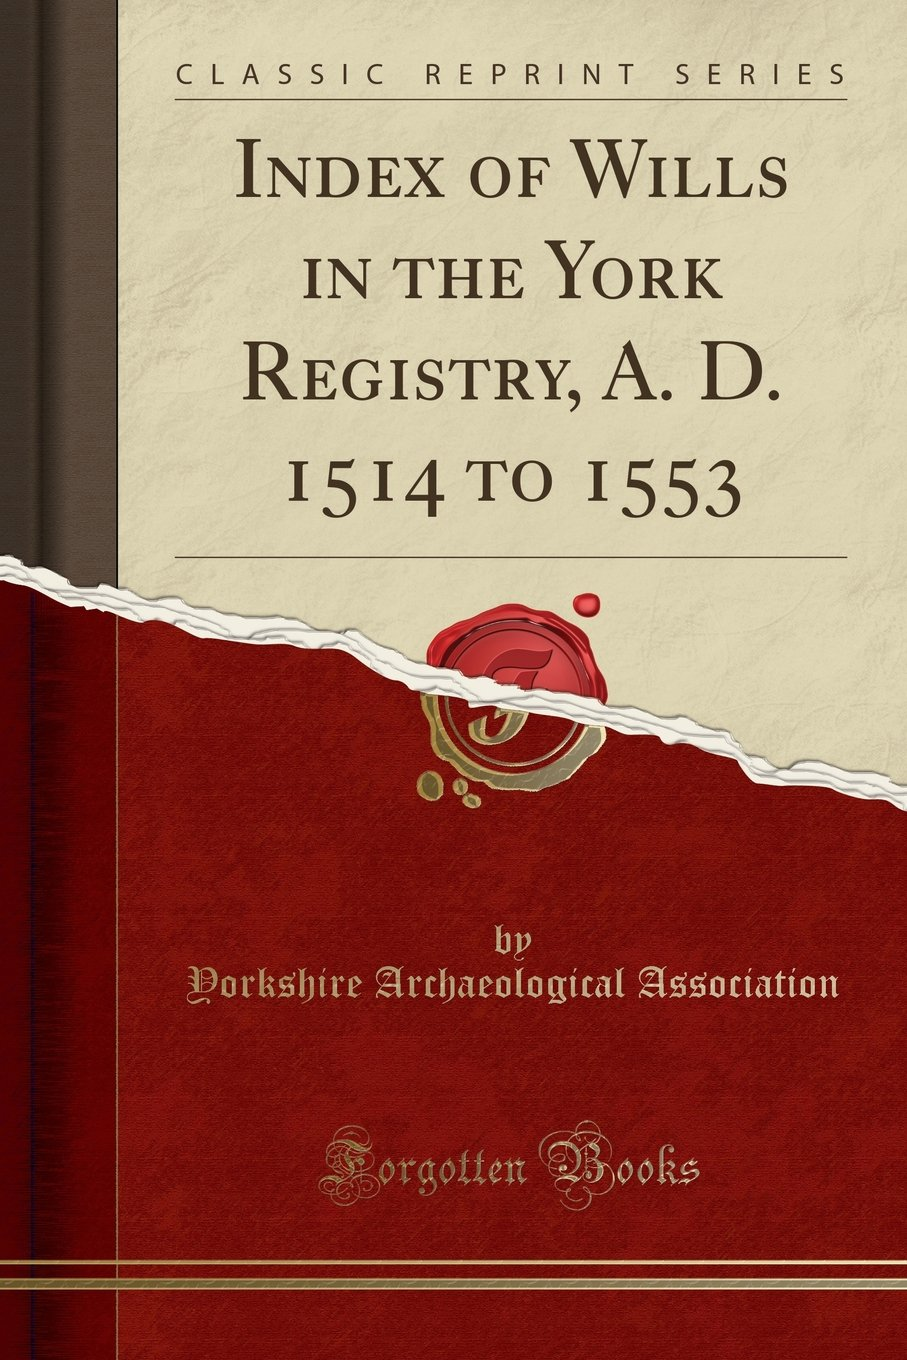 Read Online Index of Wills in the York Registry, A. D. 1514 to 1553 (Classic Reprint) PDF